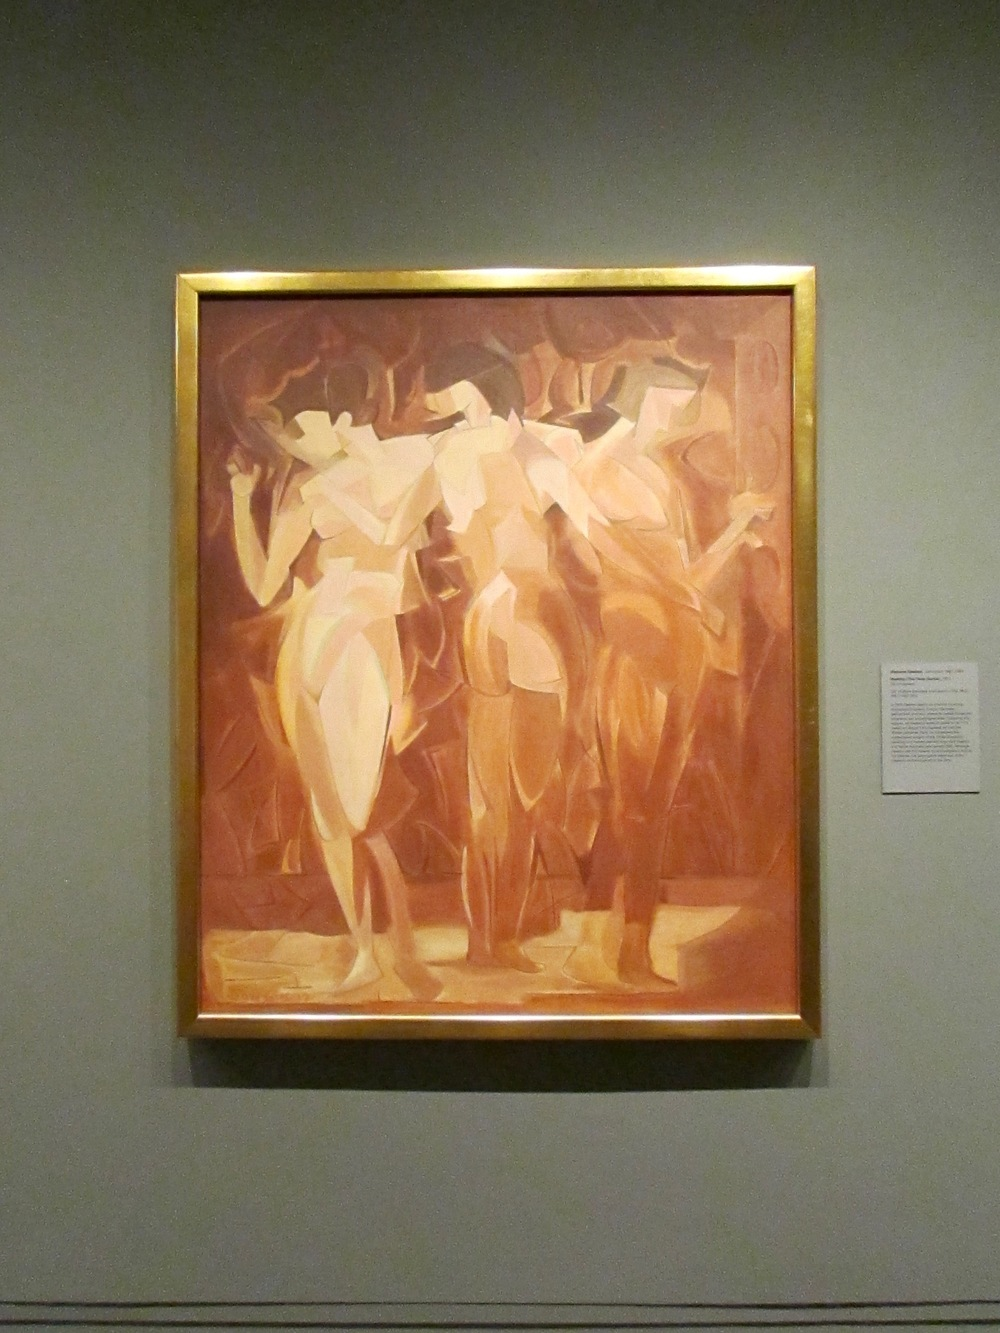 Meeting (The Three Graces), 1912, by Manierre Dawson at The Met in NYC